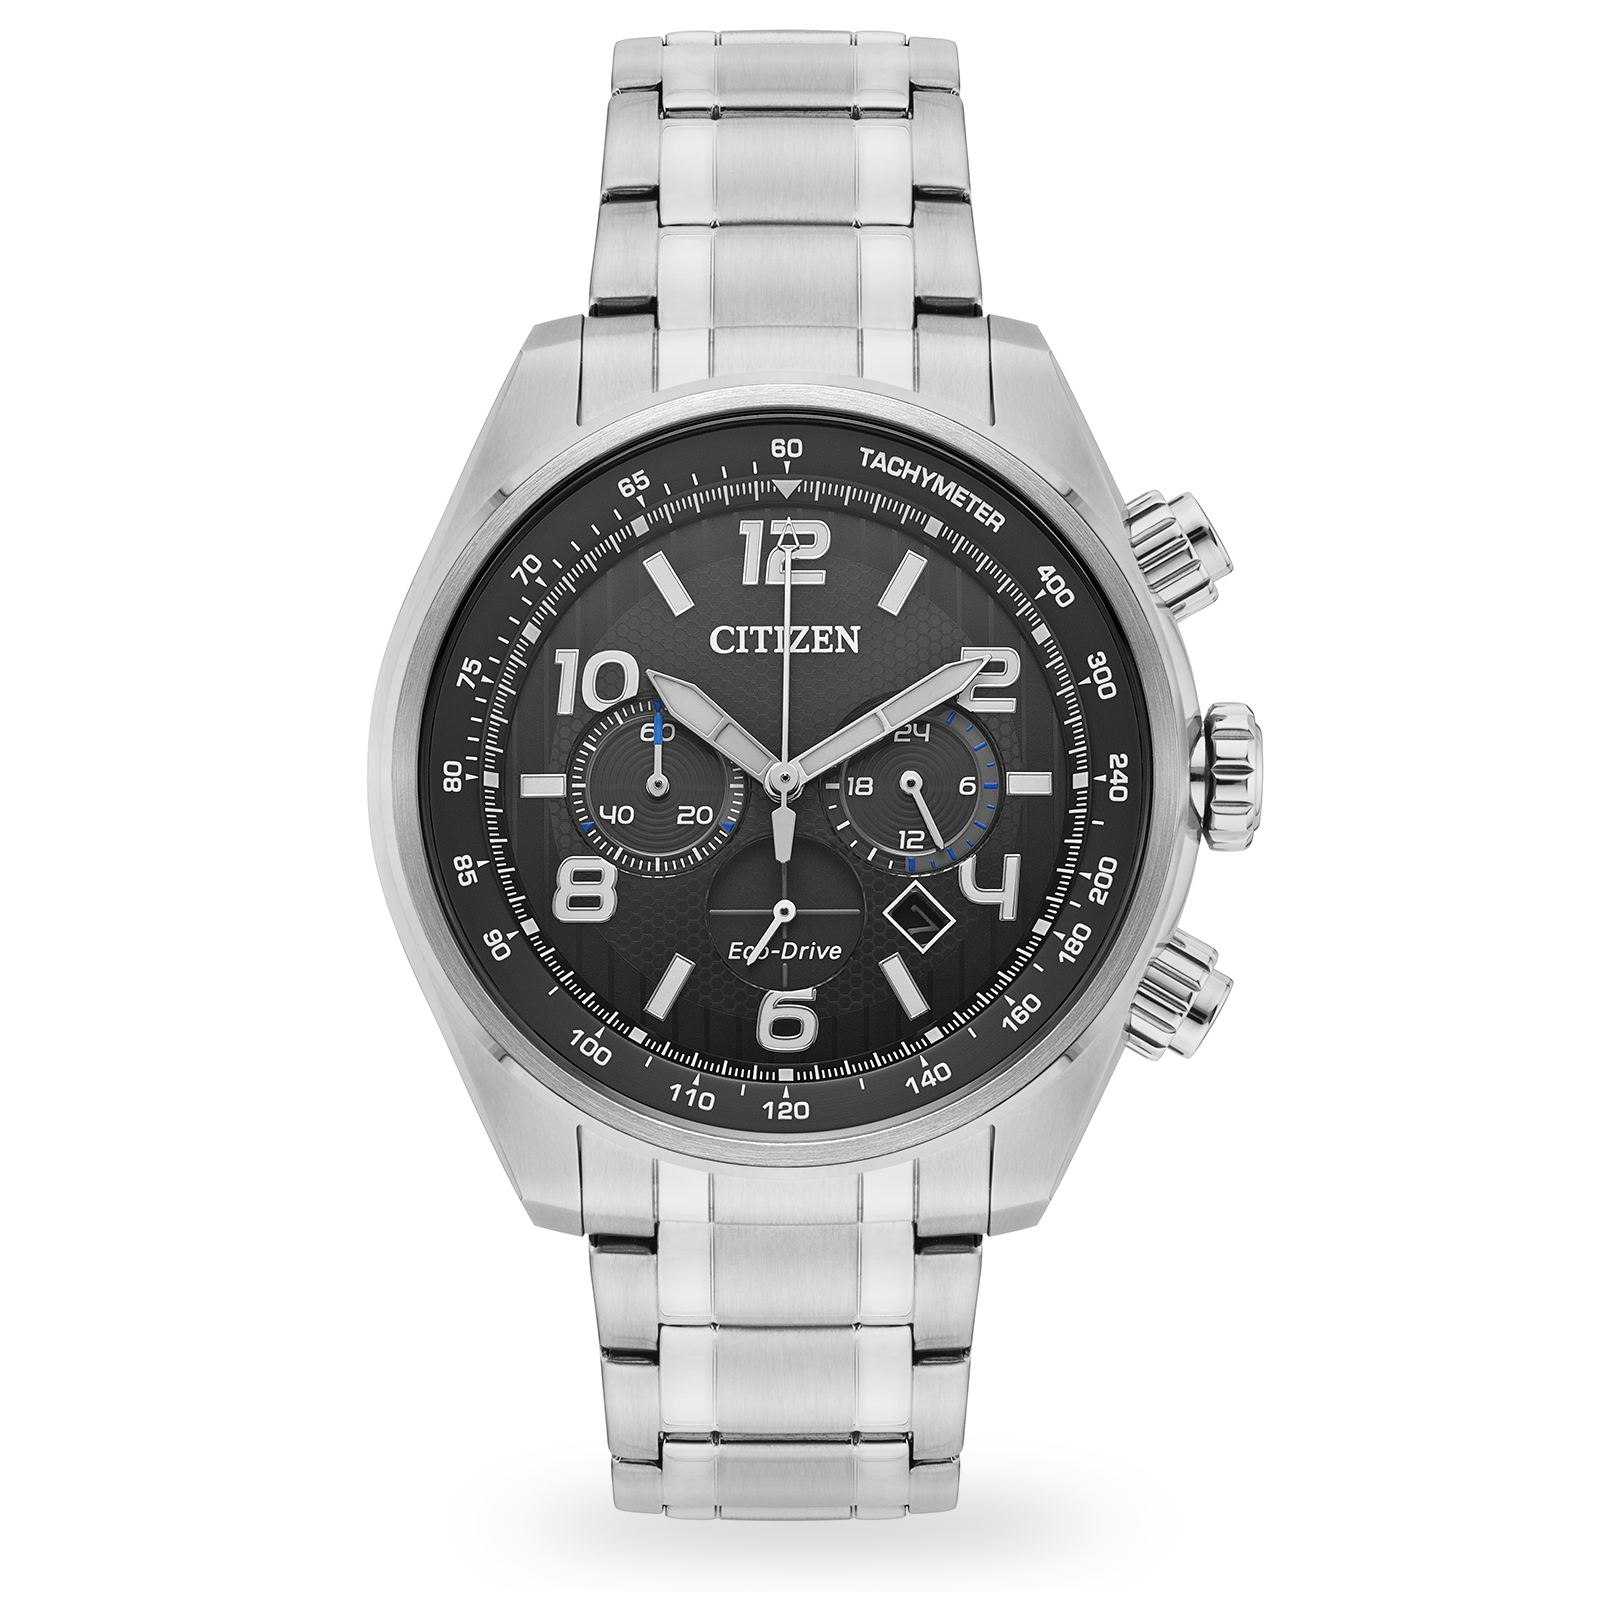 Citizen Eco-Drive Men's Chronograph Watch 45mm CA4330-57H